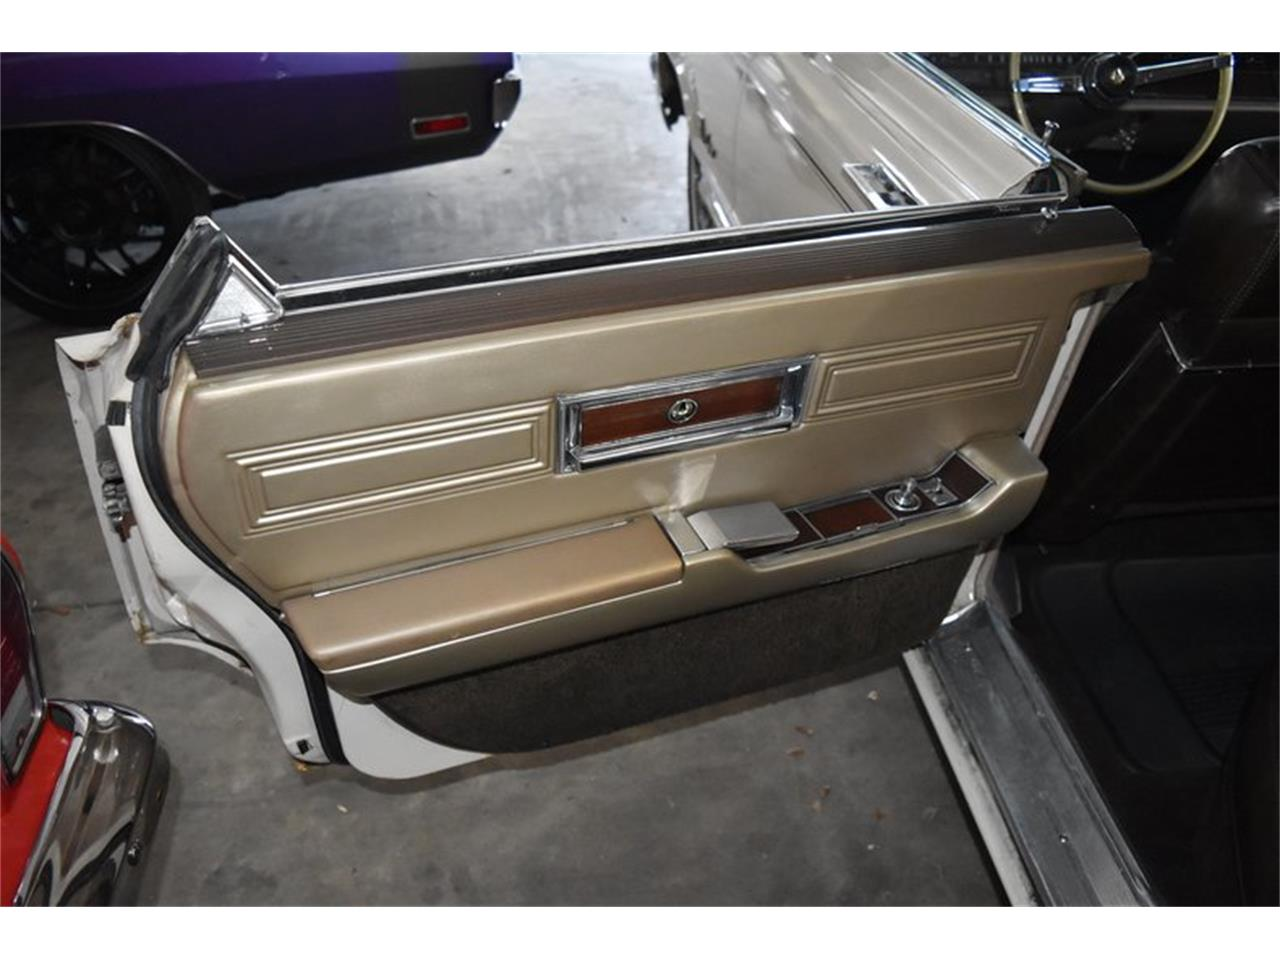 Large Picture of 1967 Chrysler Imperial located in Florida Offered by Orlando Classic Cars - QIWP